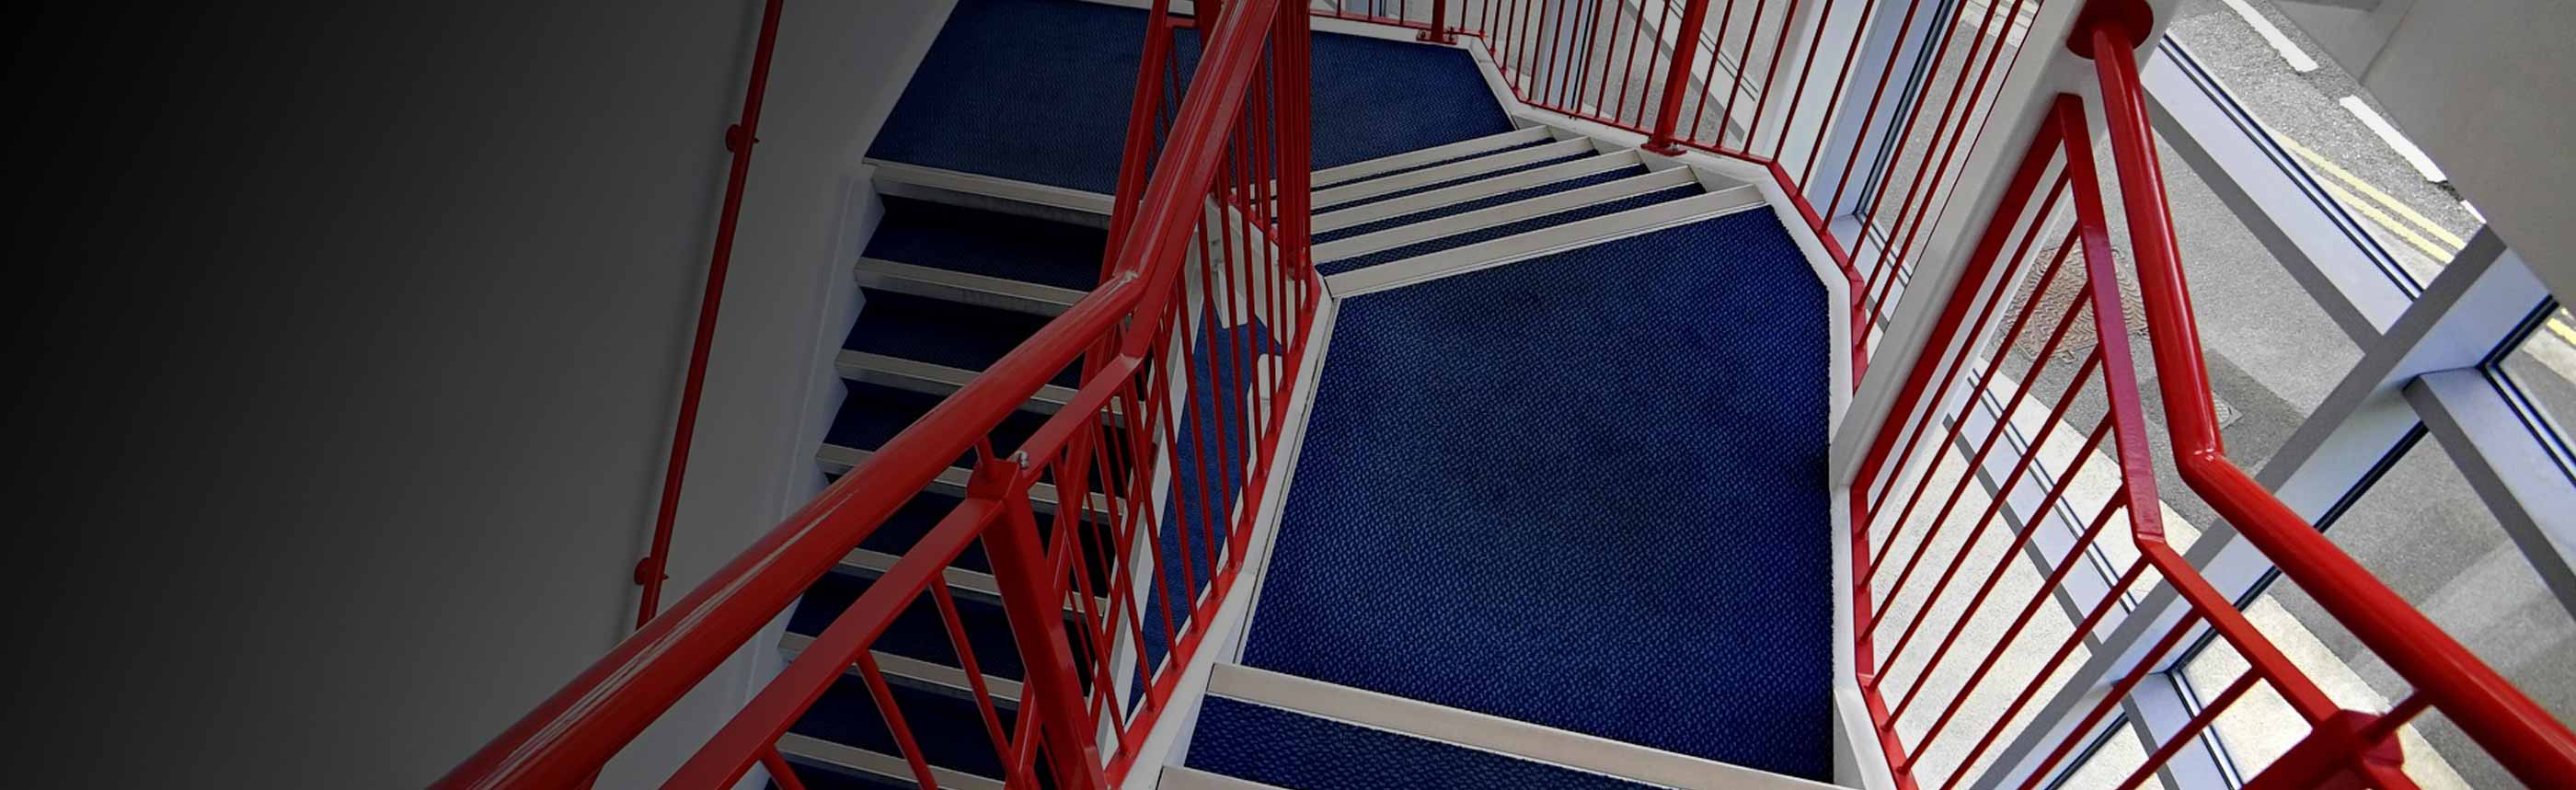 Affordable commercial flooring in the heart of luton for Abbotts flooring